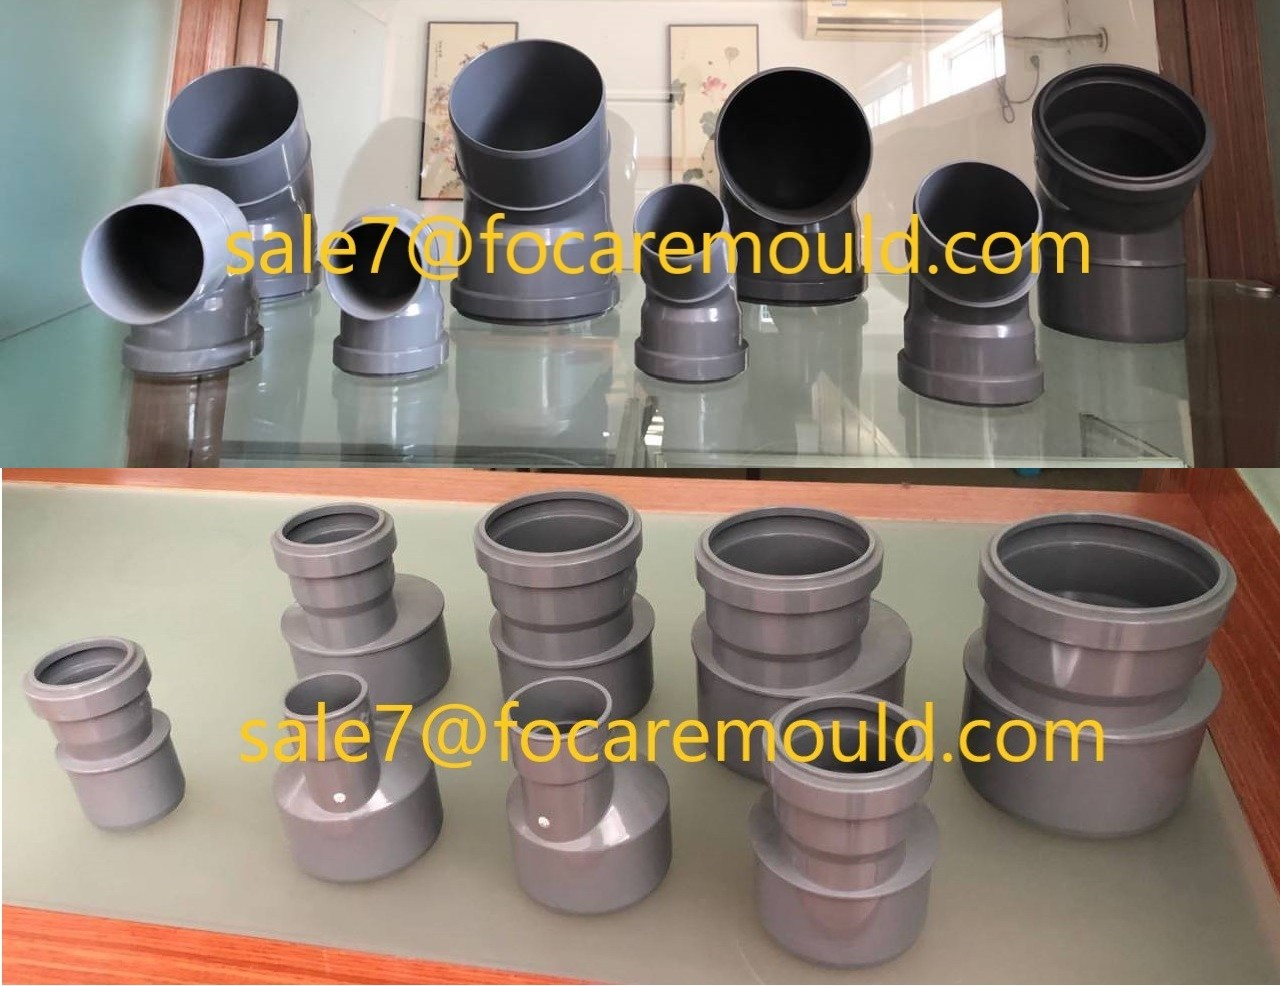 High quality Plastic Pipe Fitting Plastic Injection Mould Quotes,China Plastic Pipe Fitting Plastic Injection Mould Factory,Plastic Pipe Fitting Plastic Injection Mould Purchasing